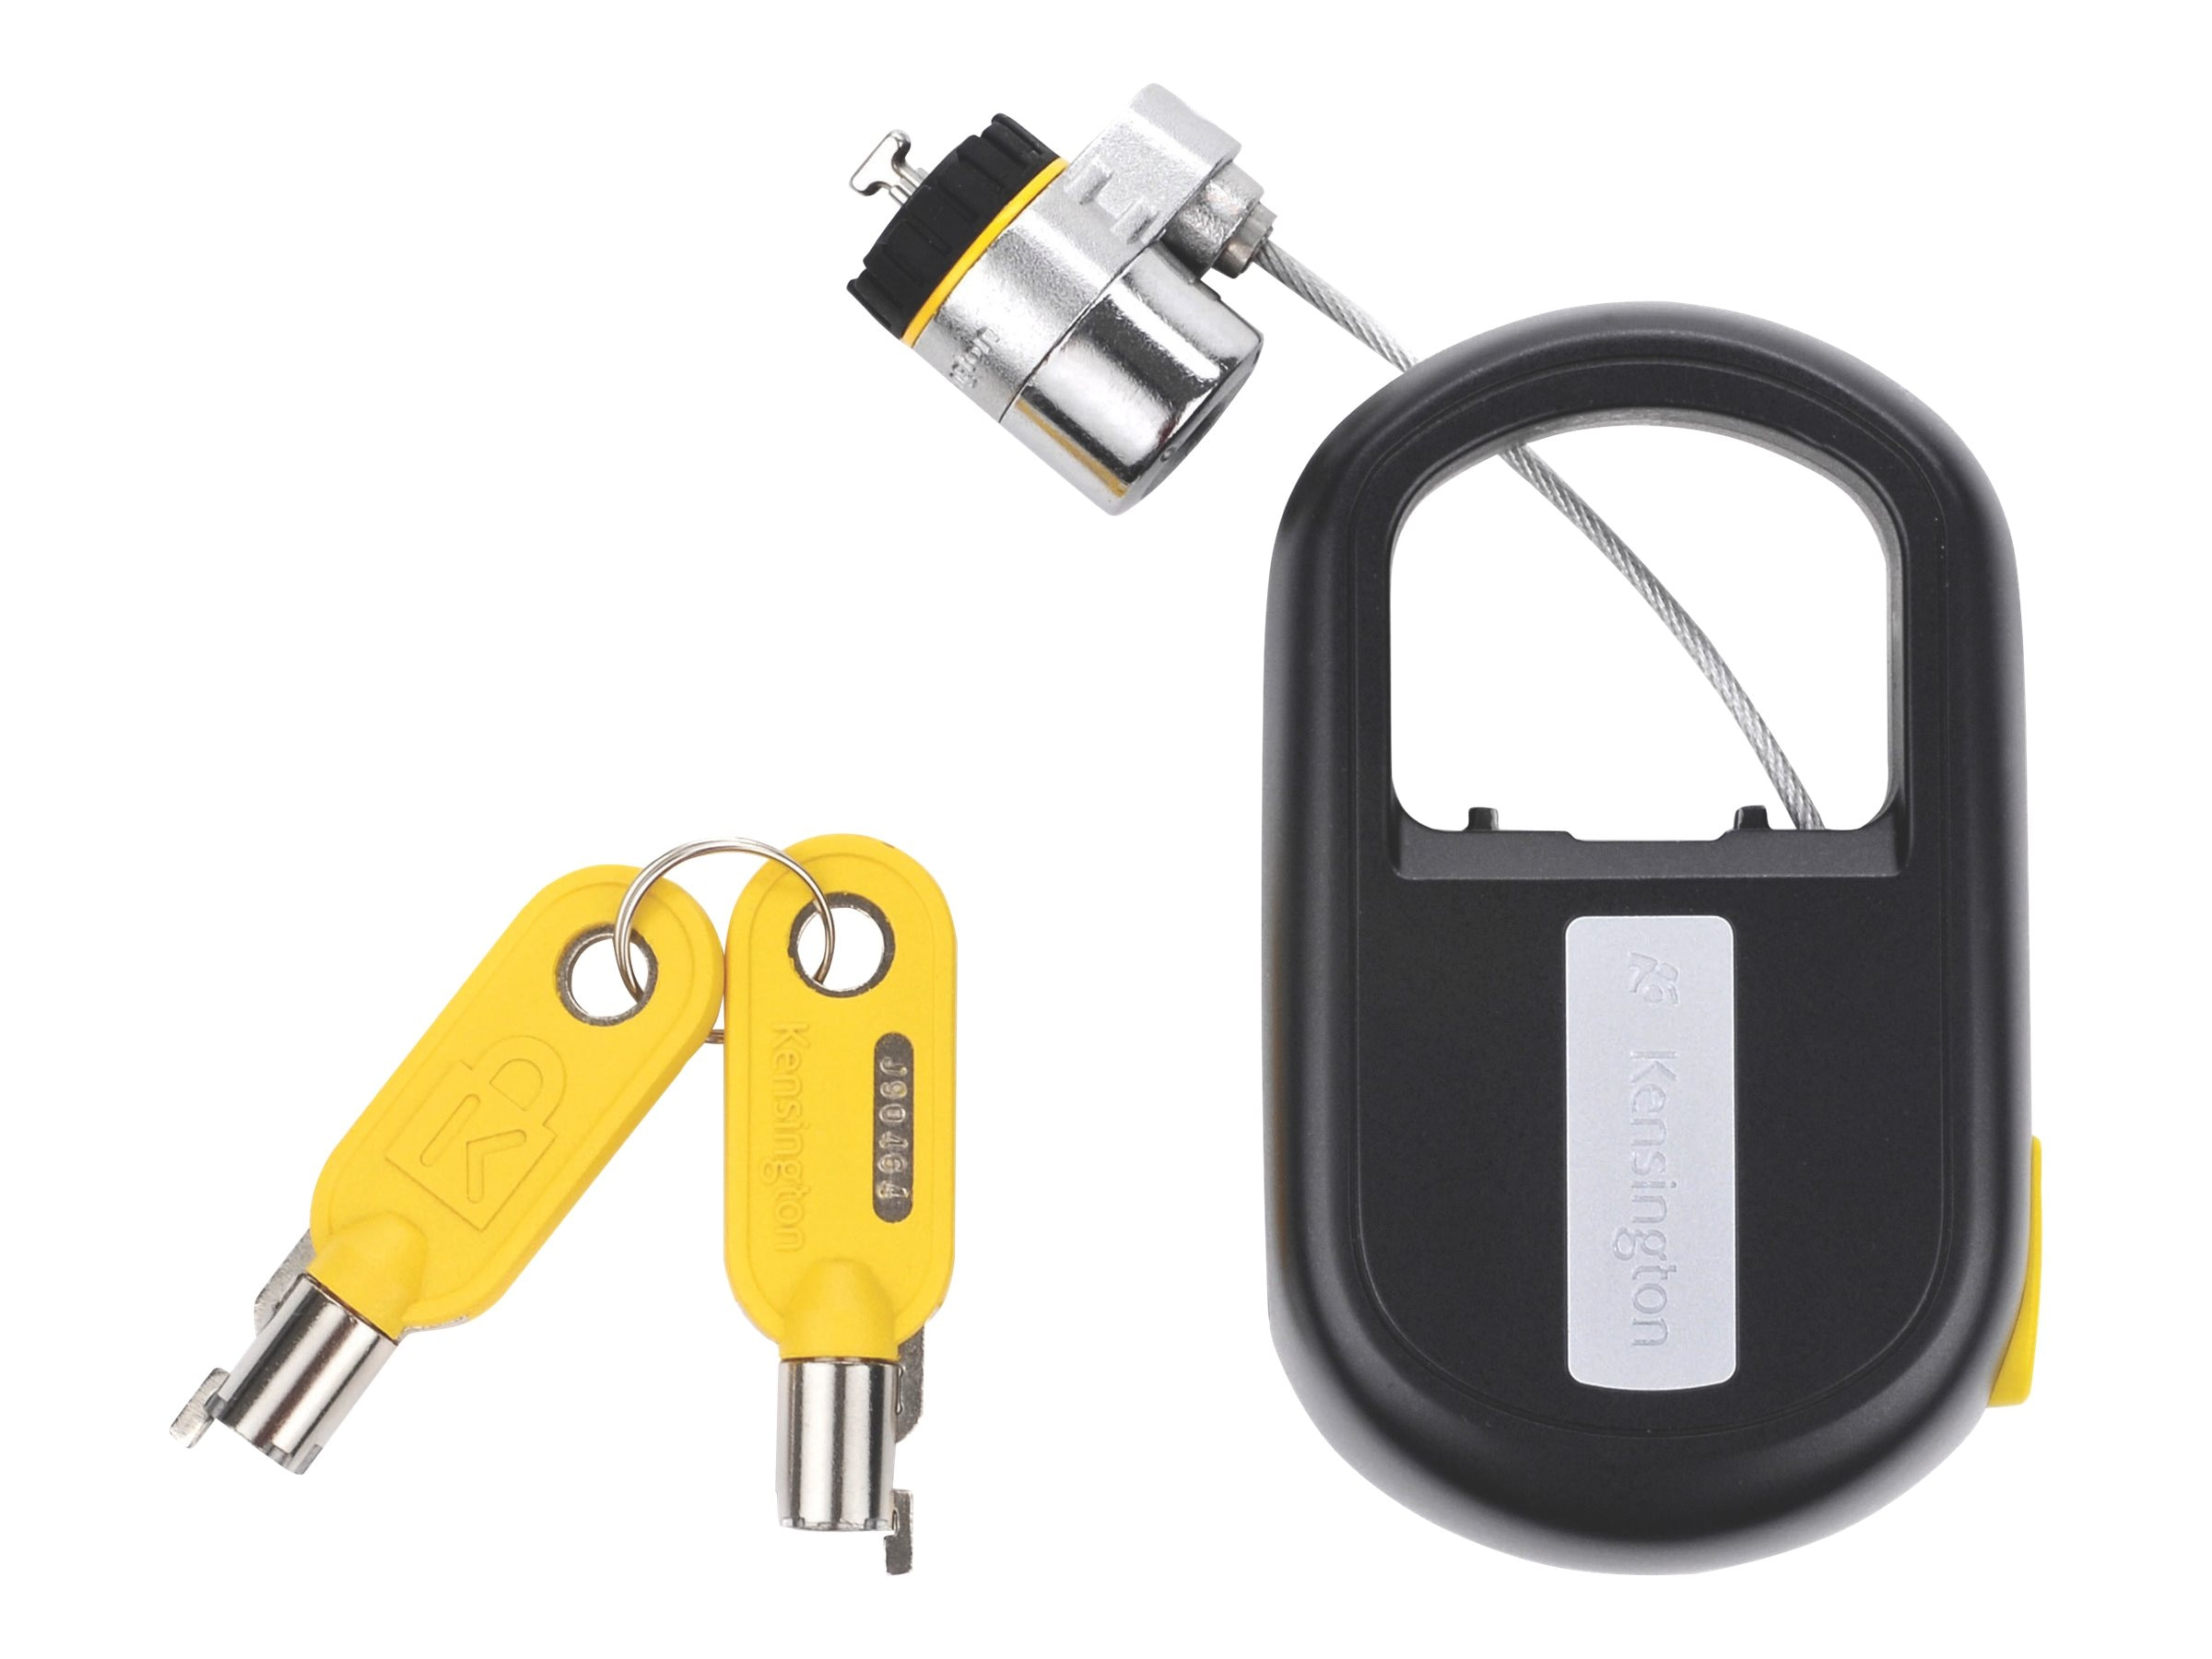 Kensington Microsaver Retractable Lock for Notebooks, K64538US, 8802091, Security Hardware